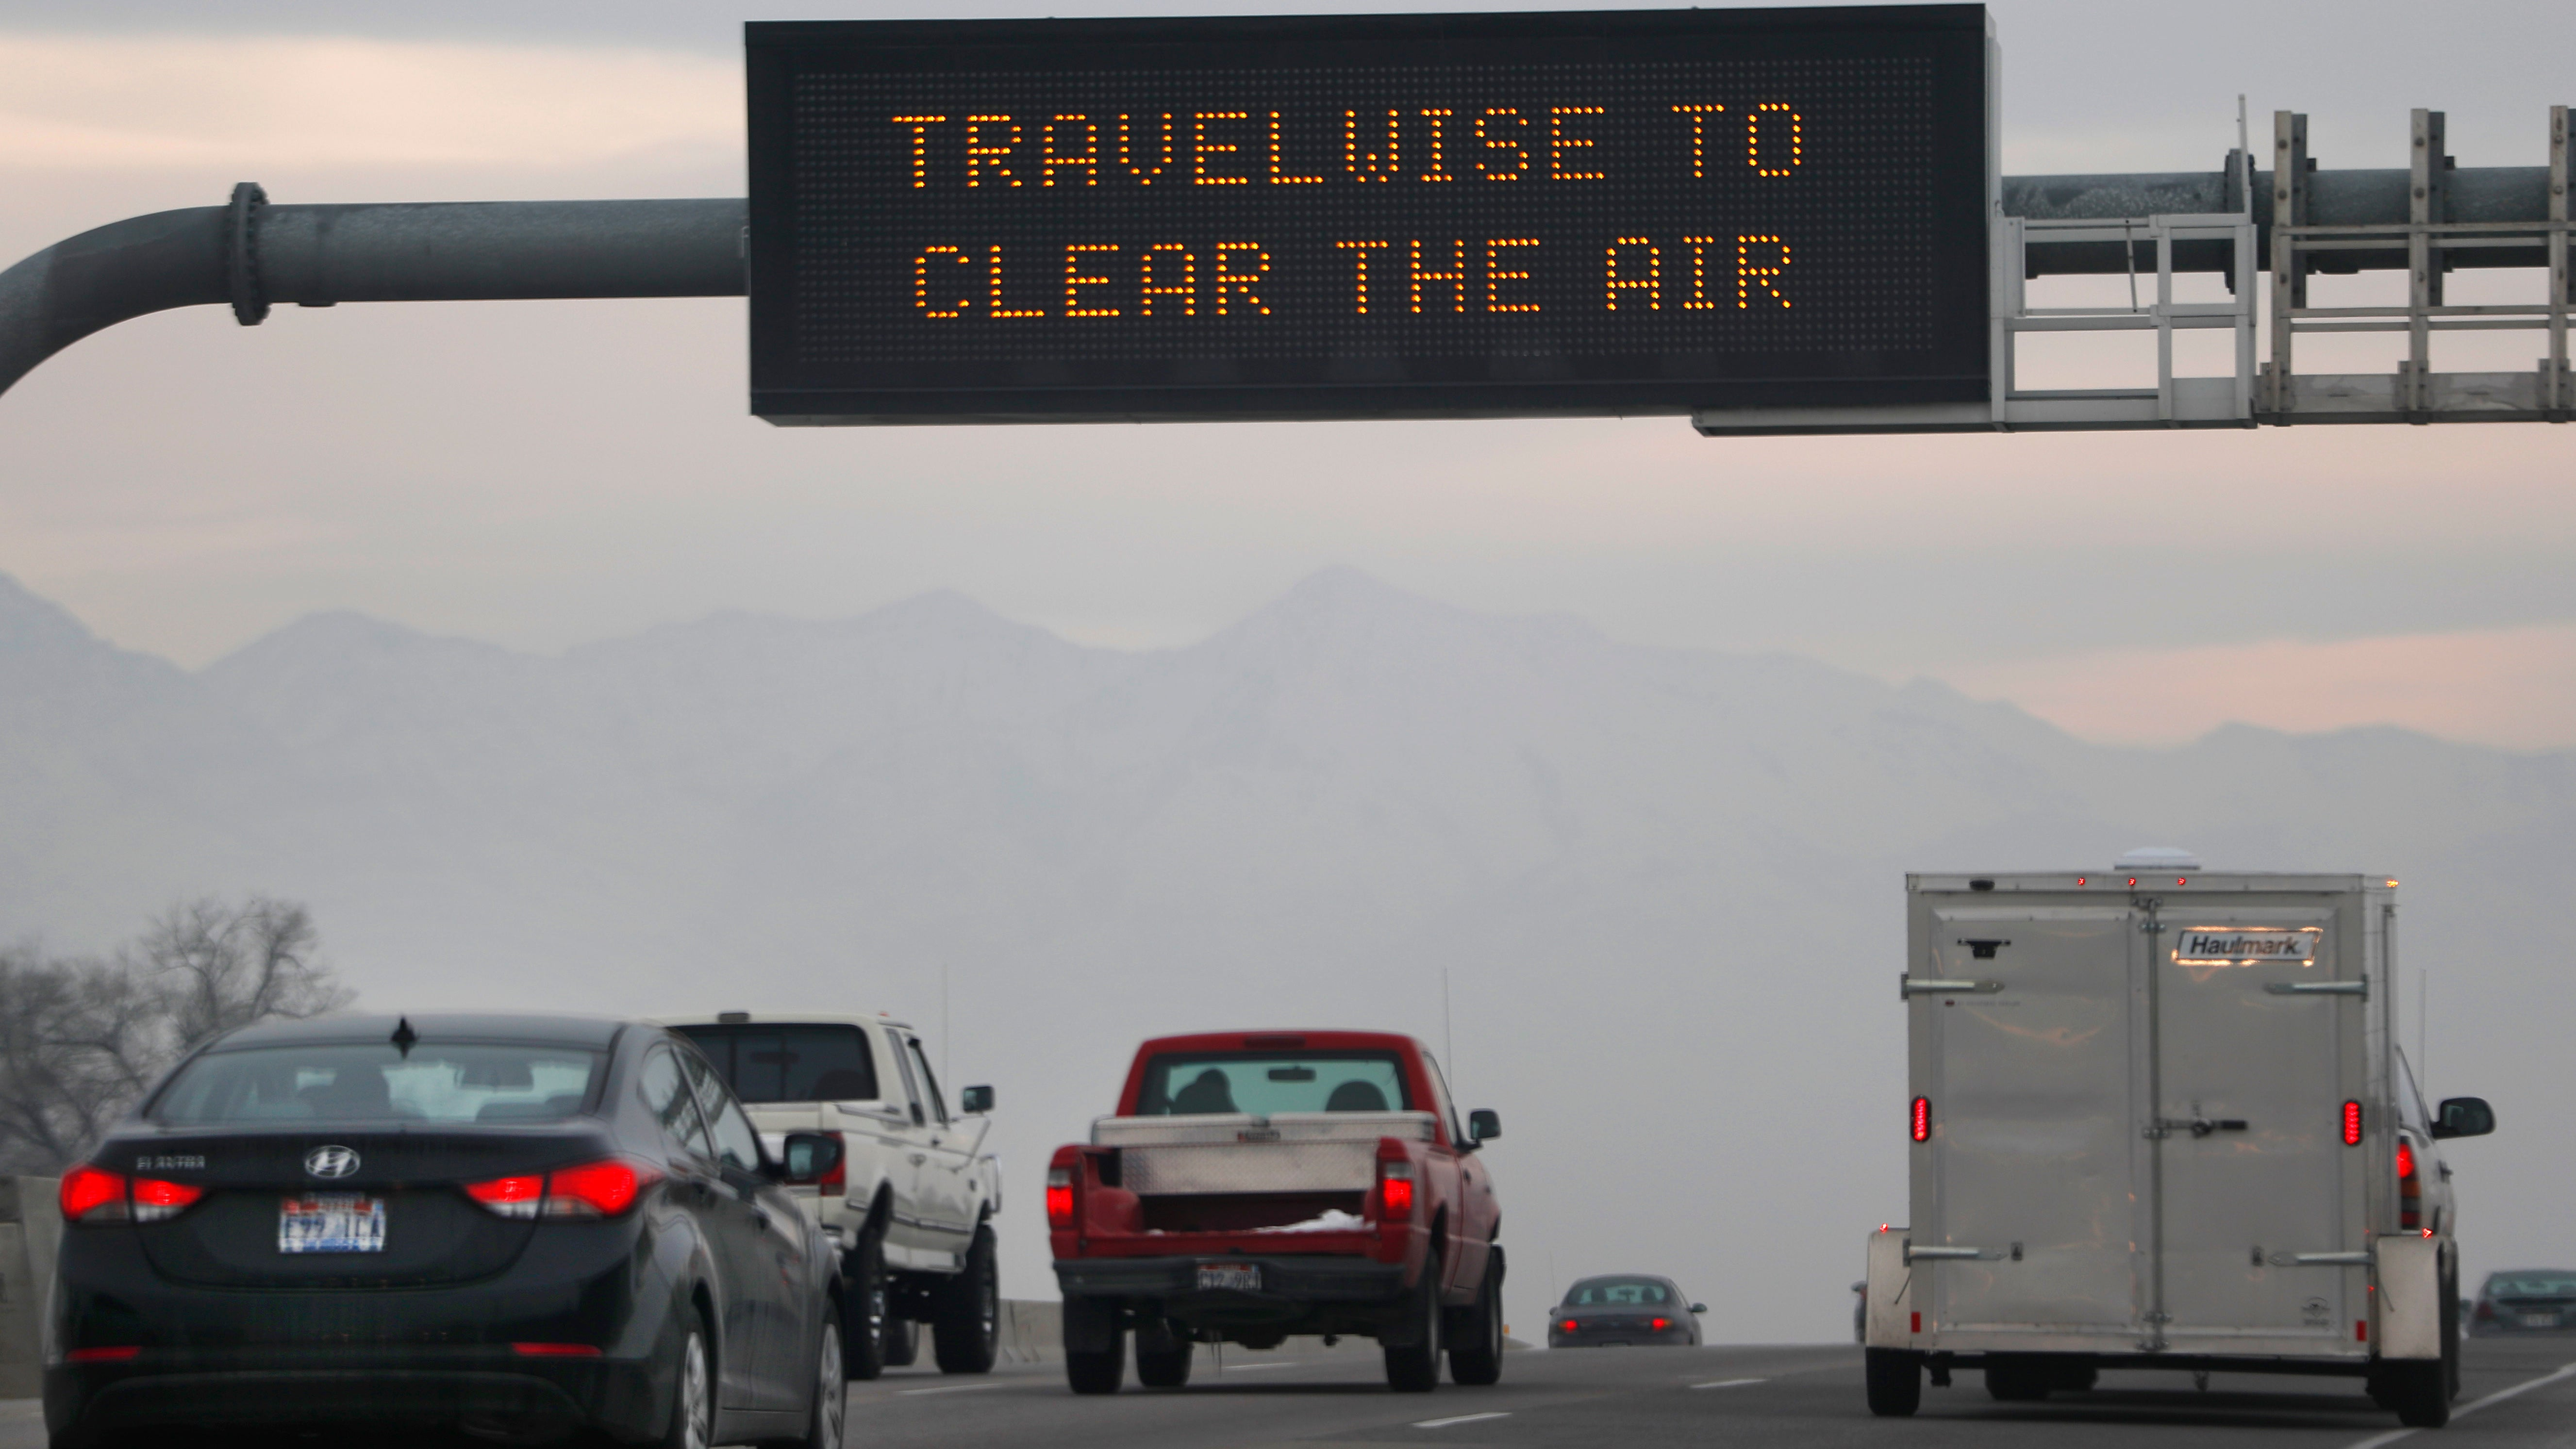 How To Avoid Air Pollution, Other Than Destroying All The Cars